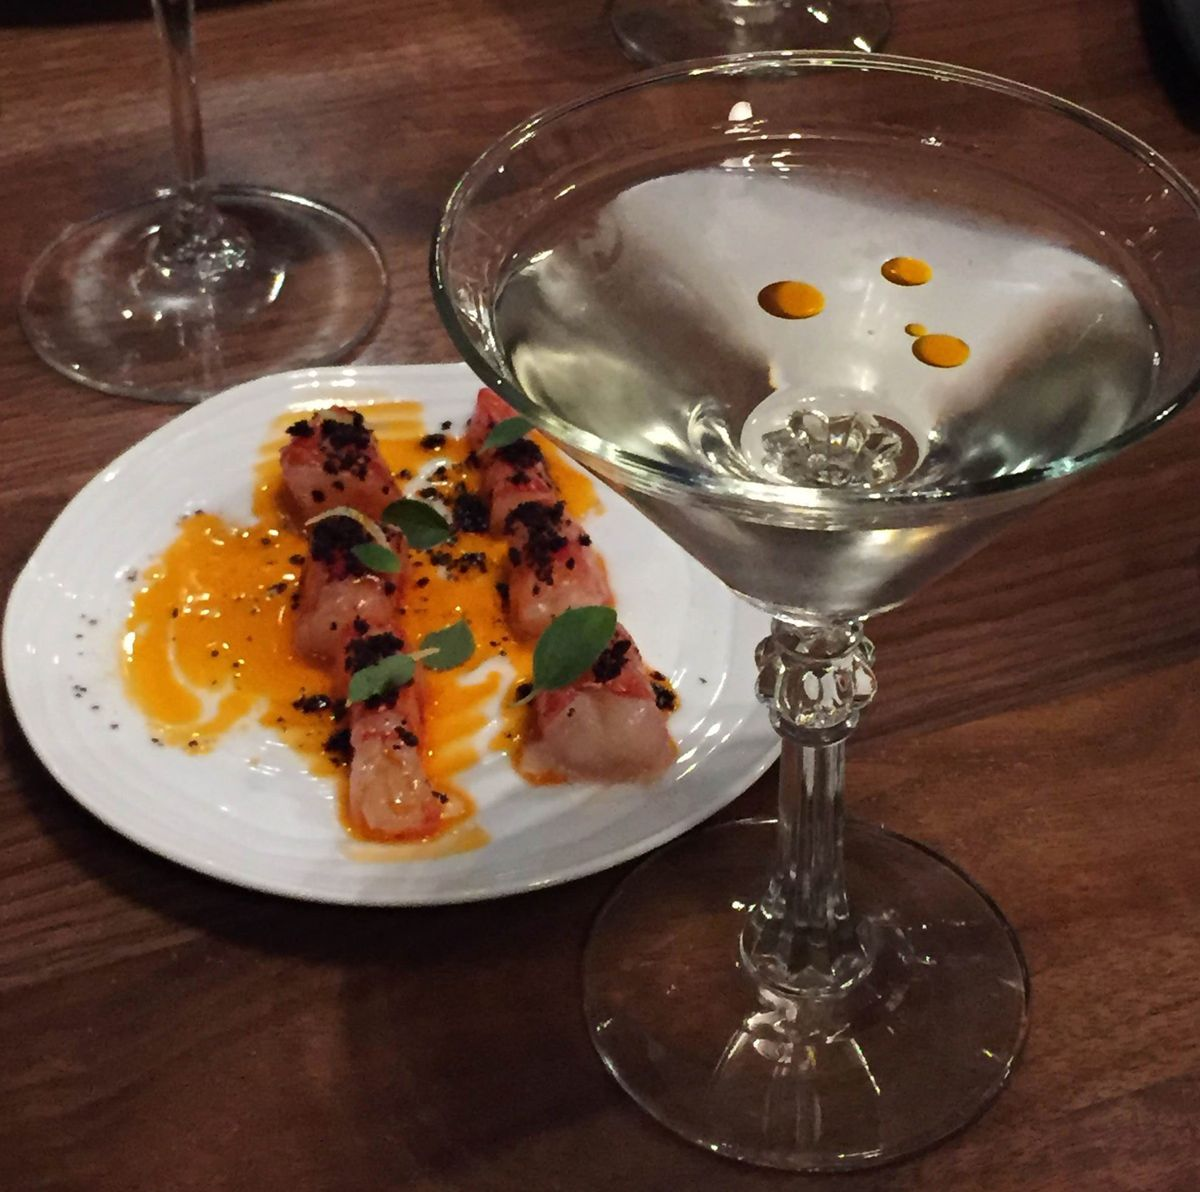 Specially garnished martini paired with shrimp crudo. Photo by Andy Lien